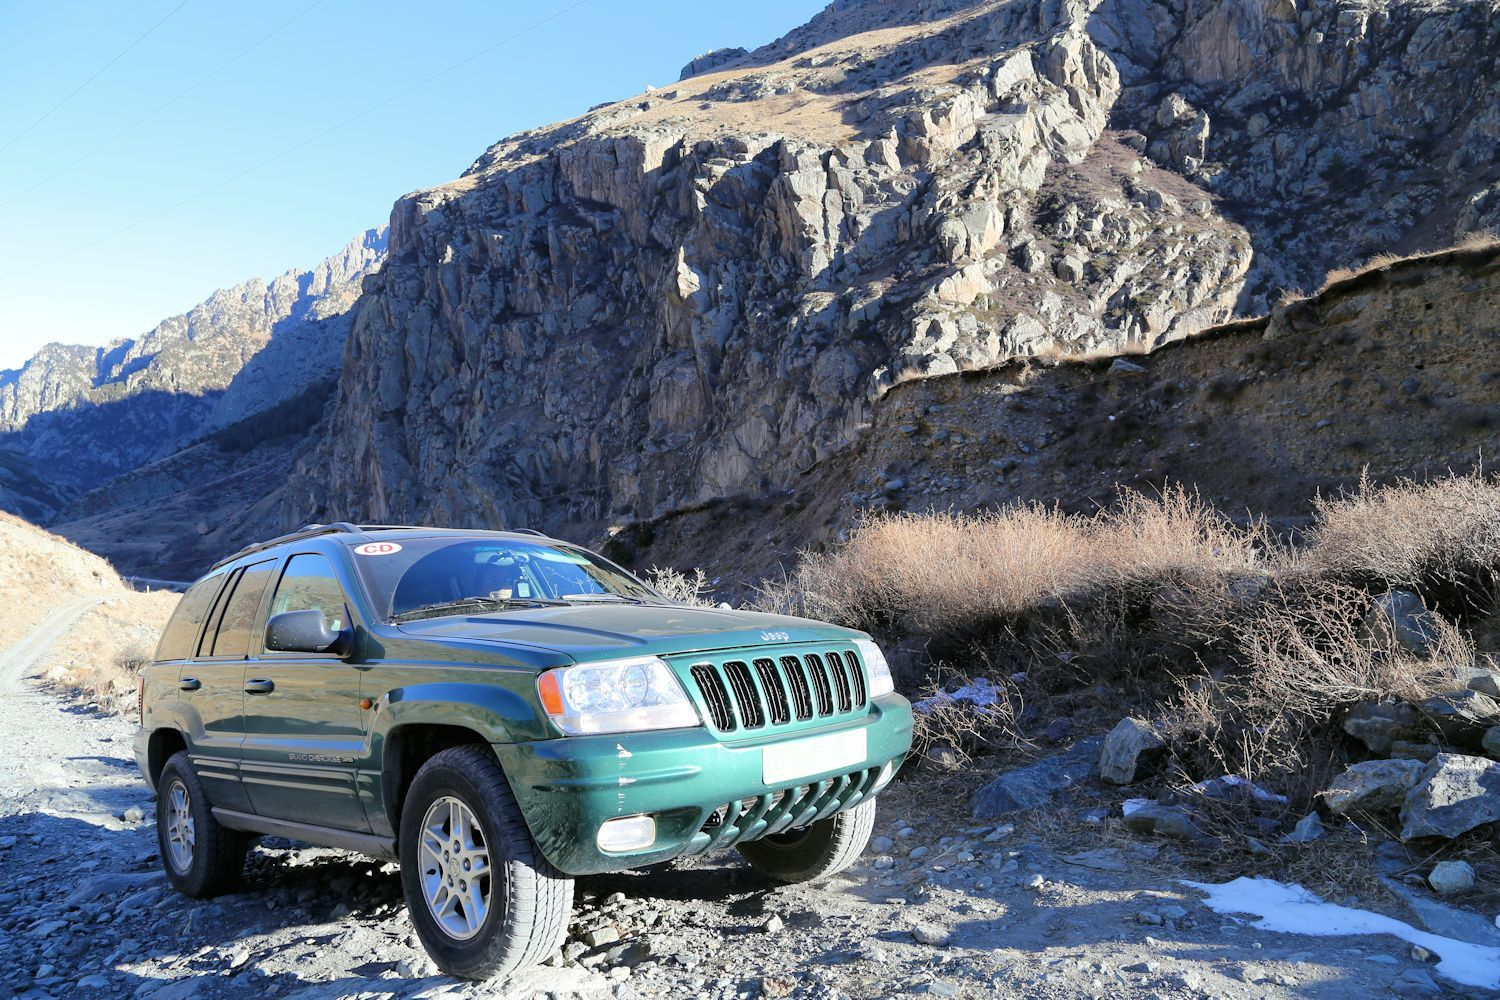 Our Jeep test drive in Caucasian mountains